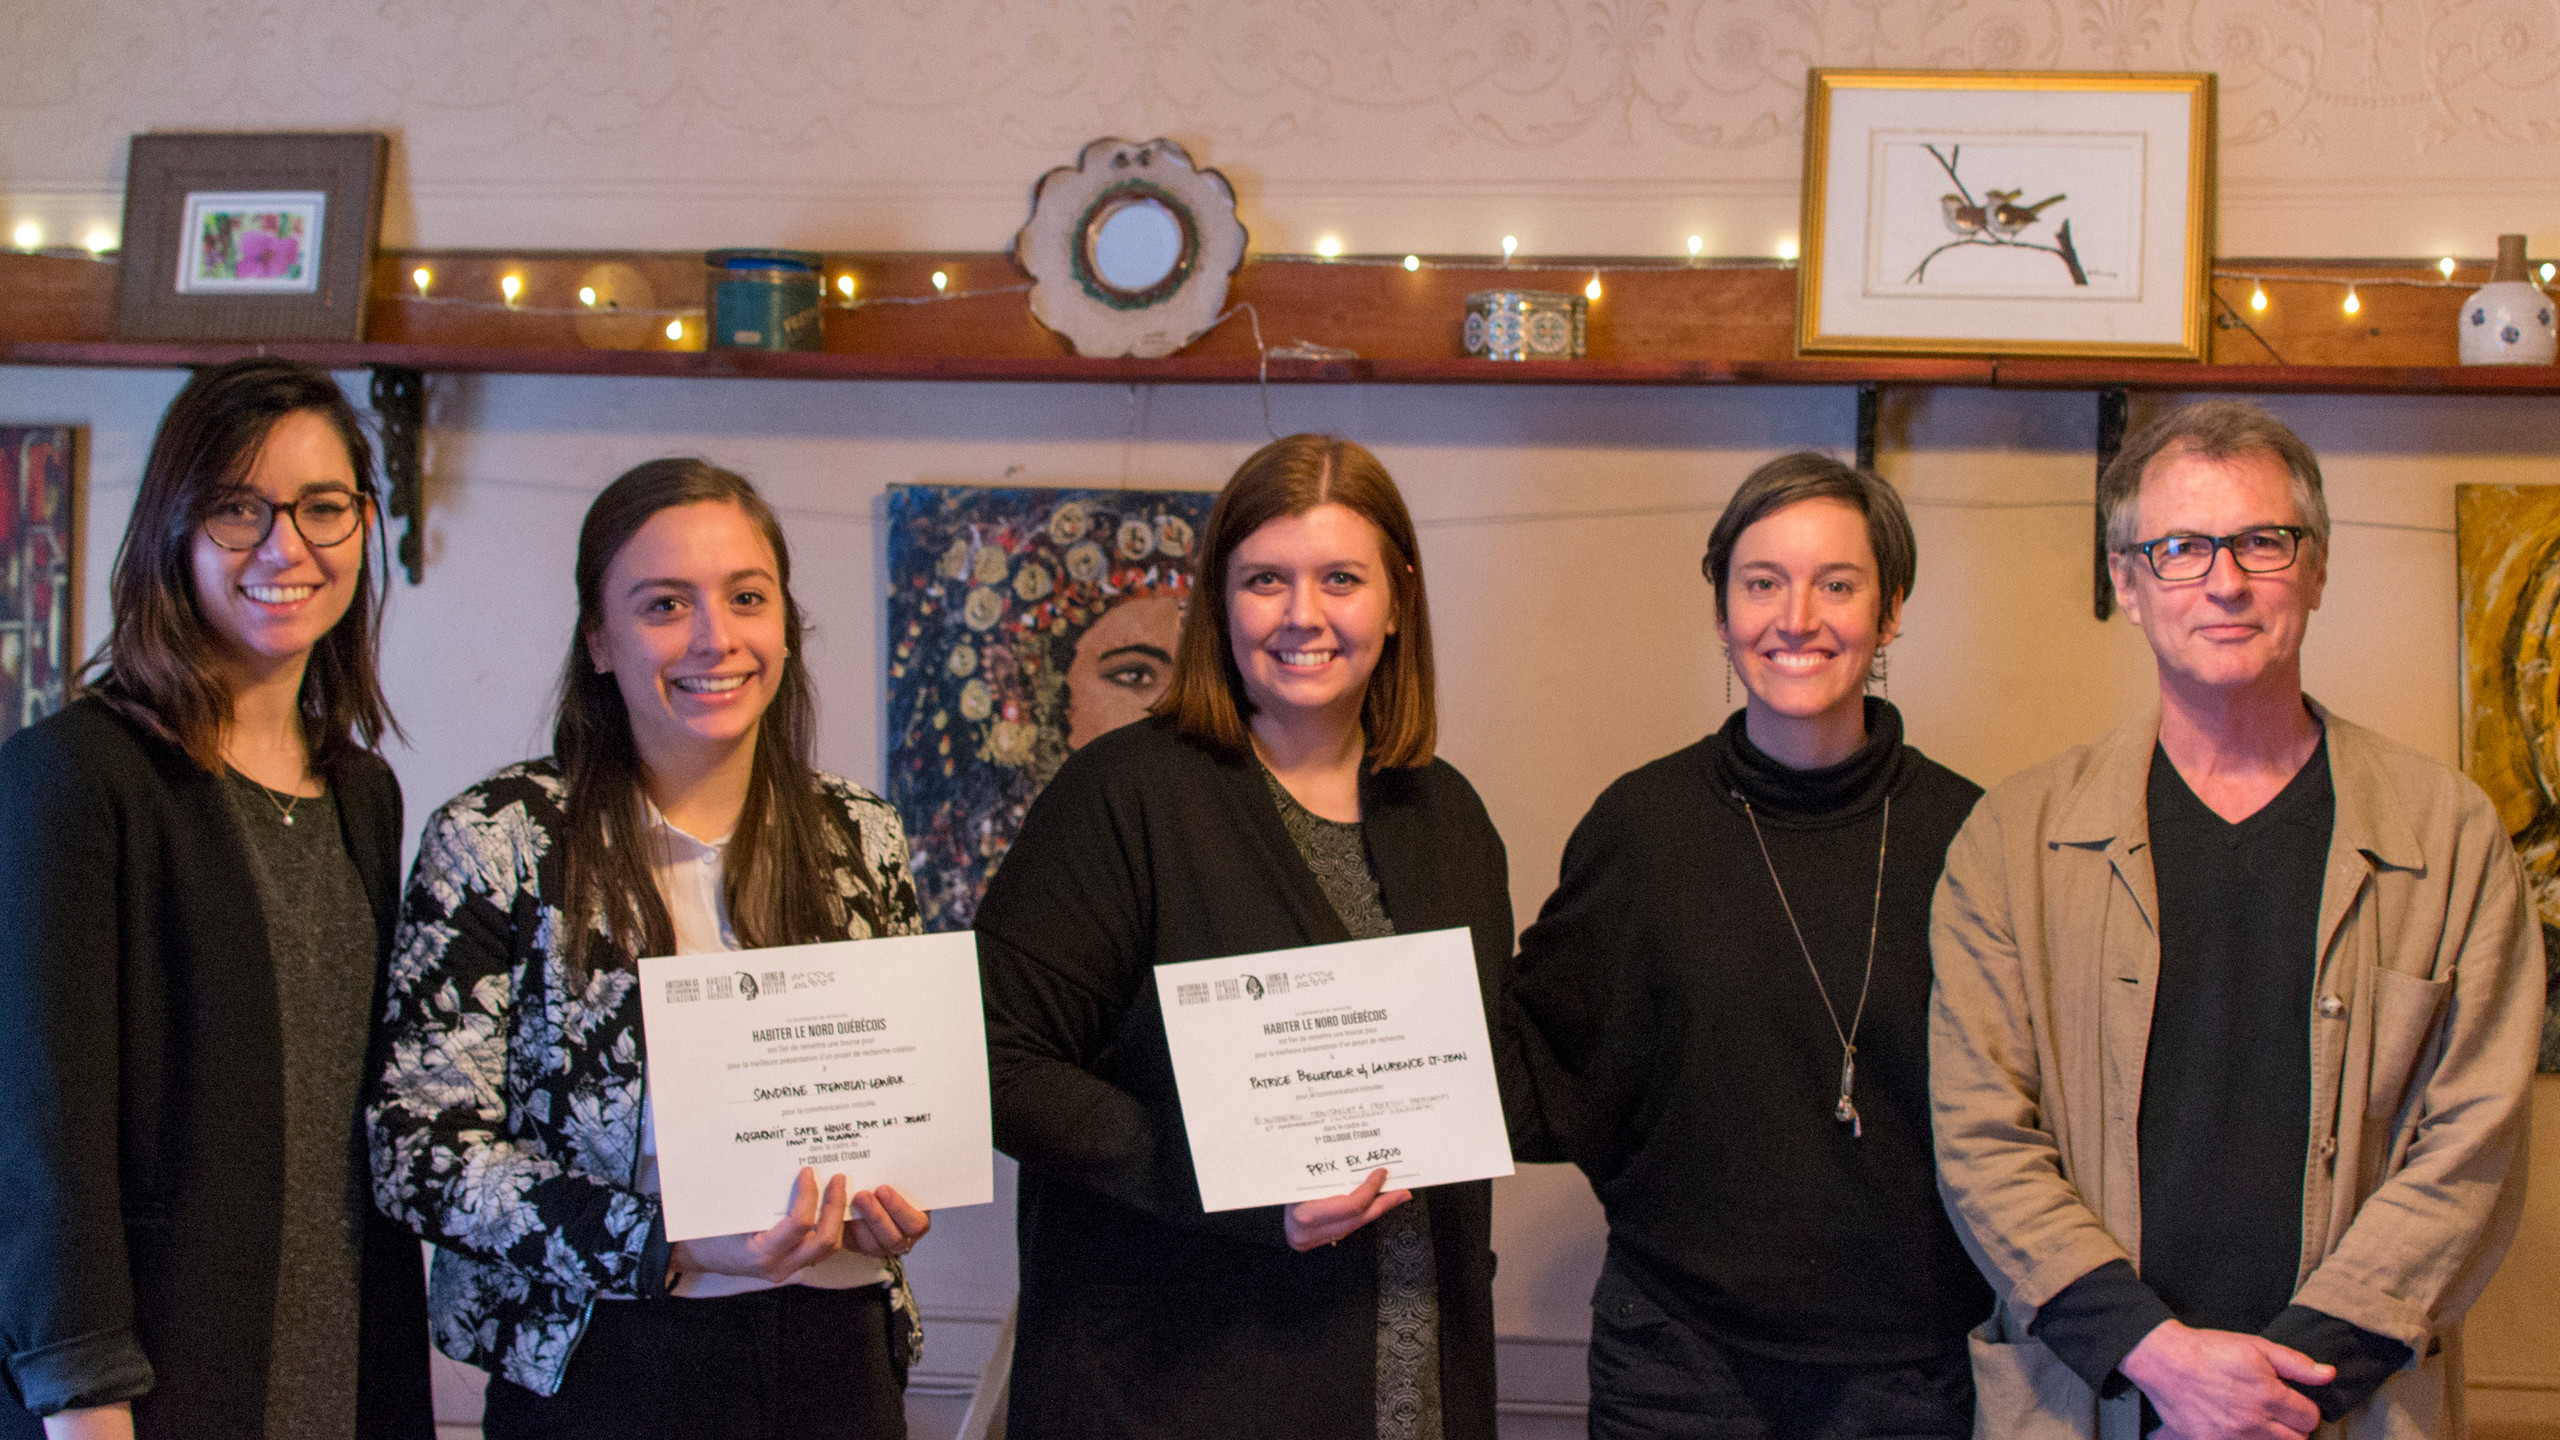 The winners of the jury prizes